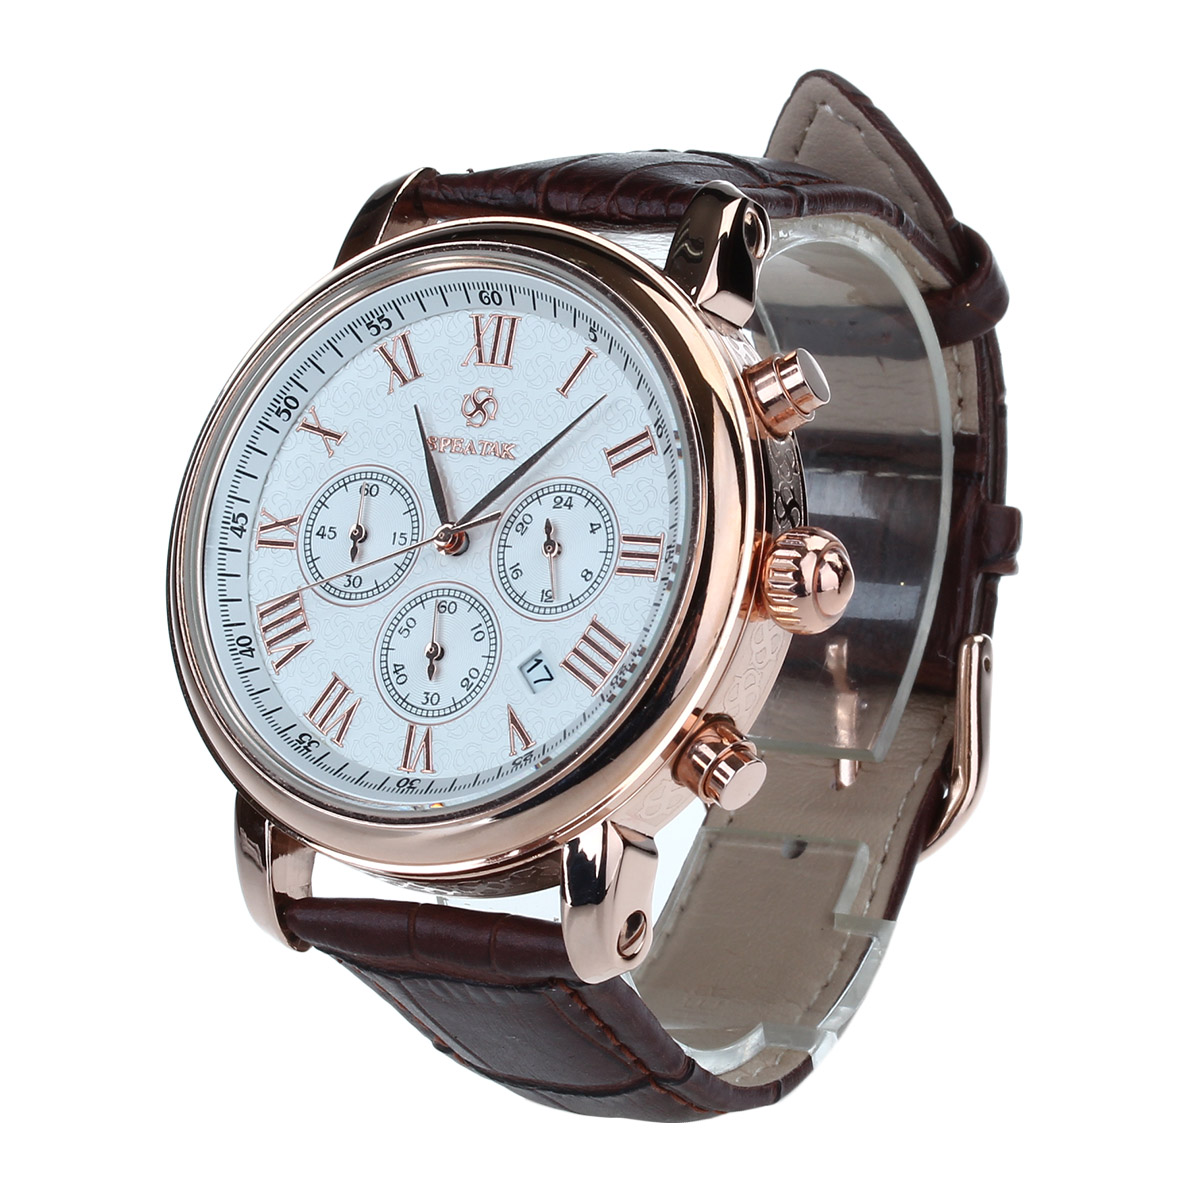 Big Round Dial Precise Quartz Movement For Accurate Time Quality Quartz Men's Watches wear well and wear comfortably(China (Mainland))